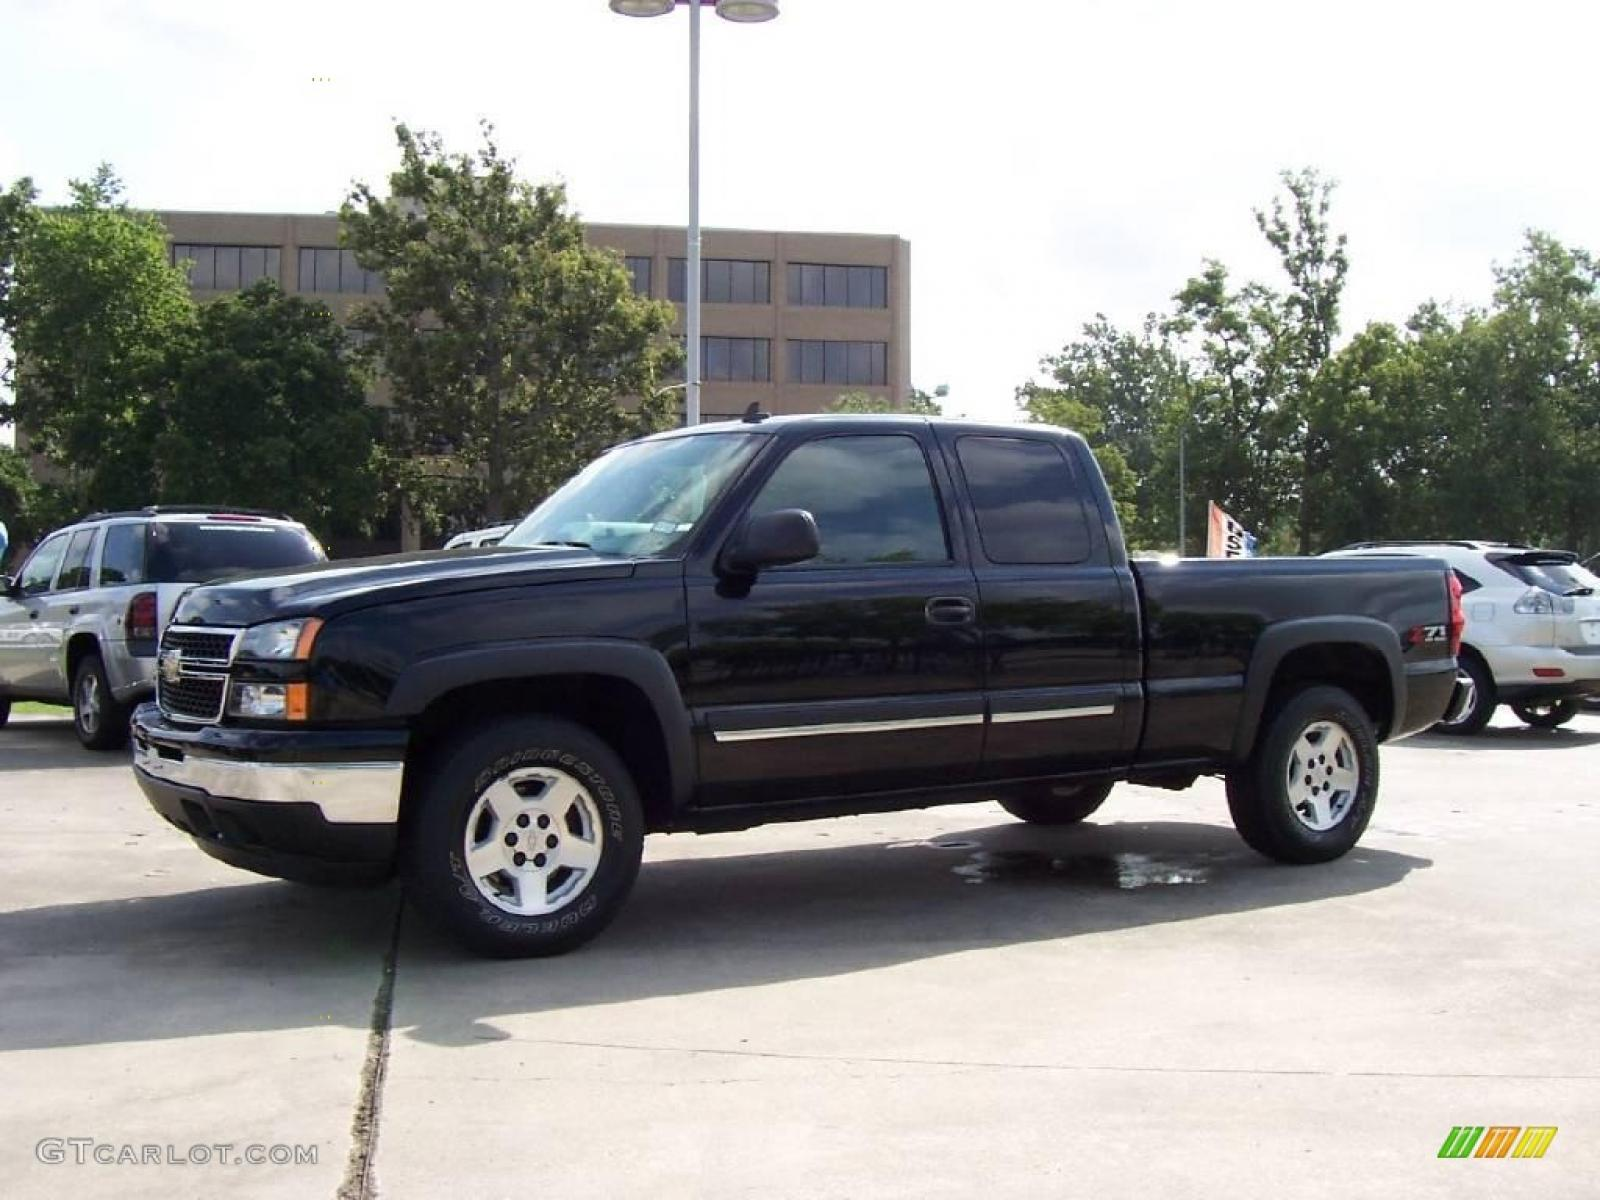 2006 chevrolet silverado 1500 information and photos zombiedrive. Cars Review. Best American Auto & Cars Review